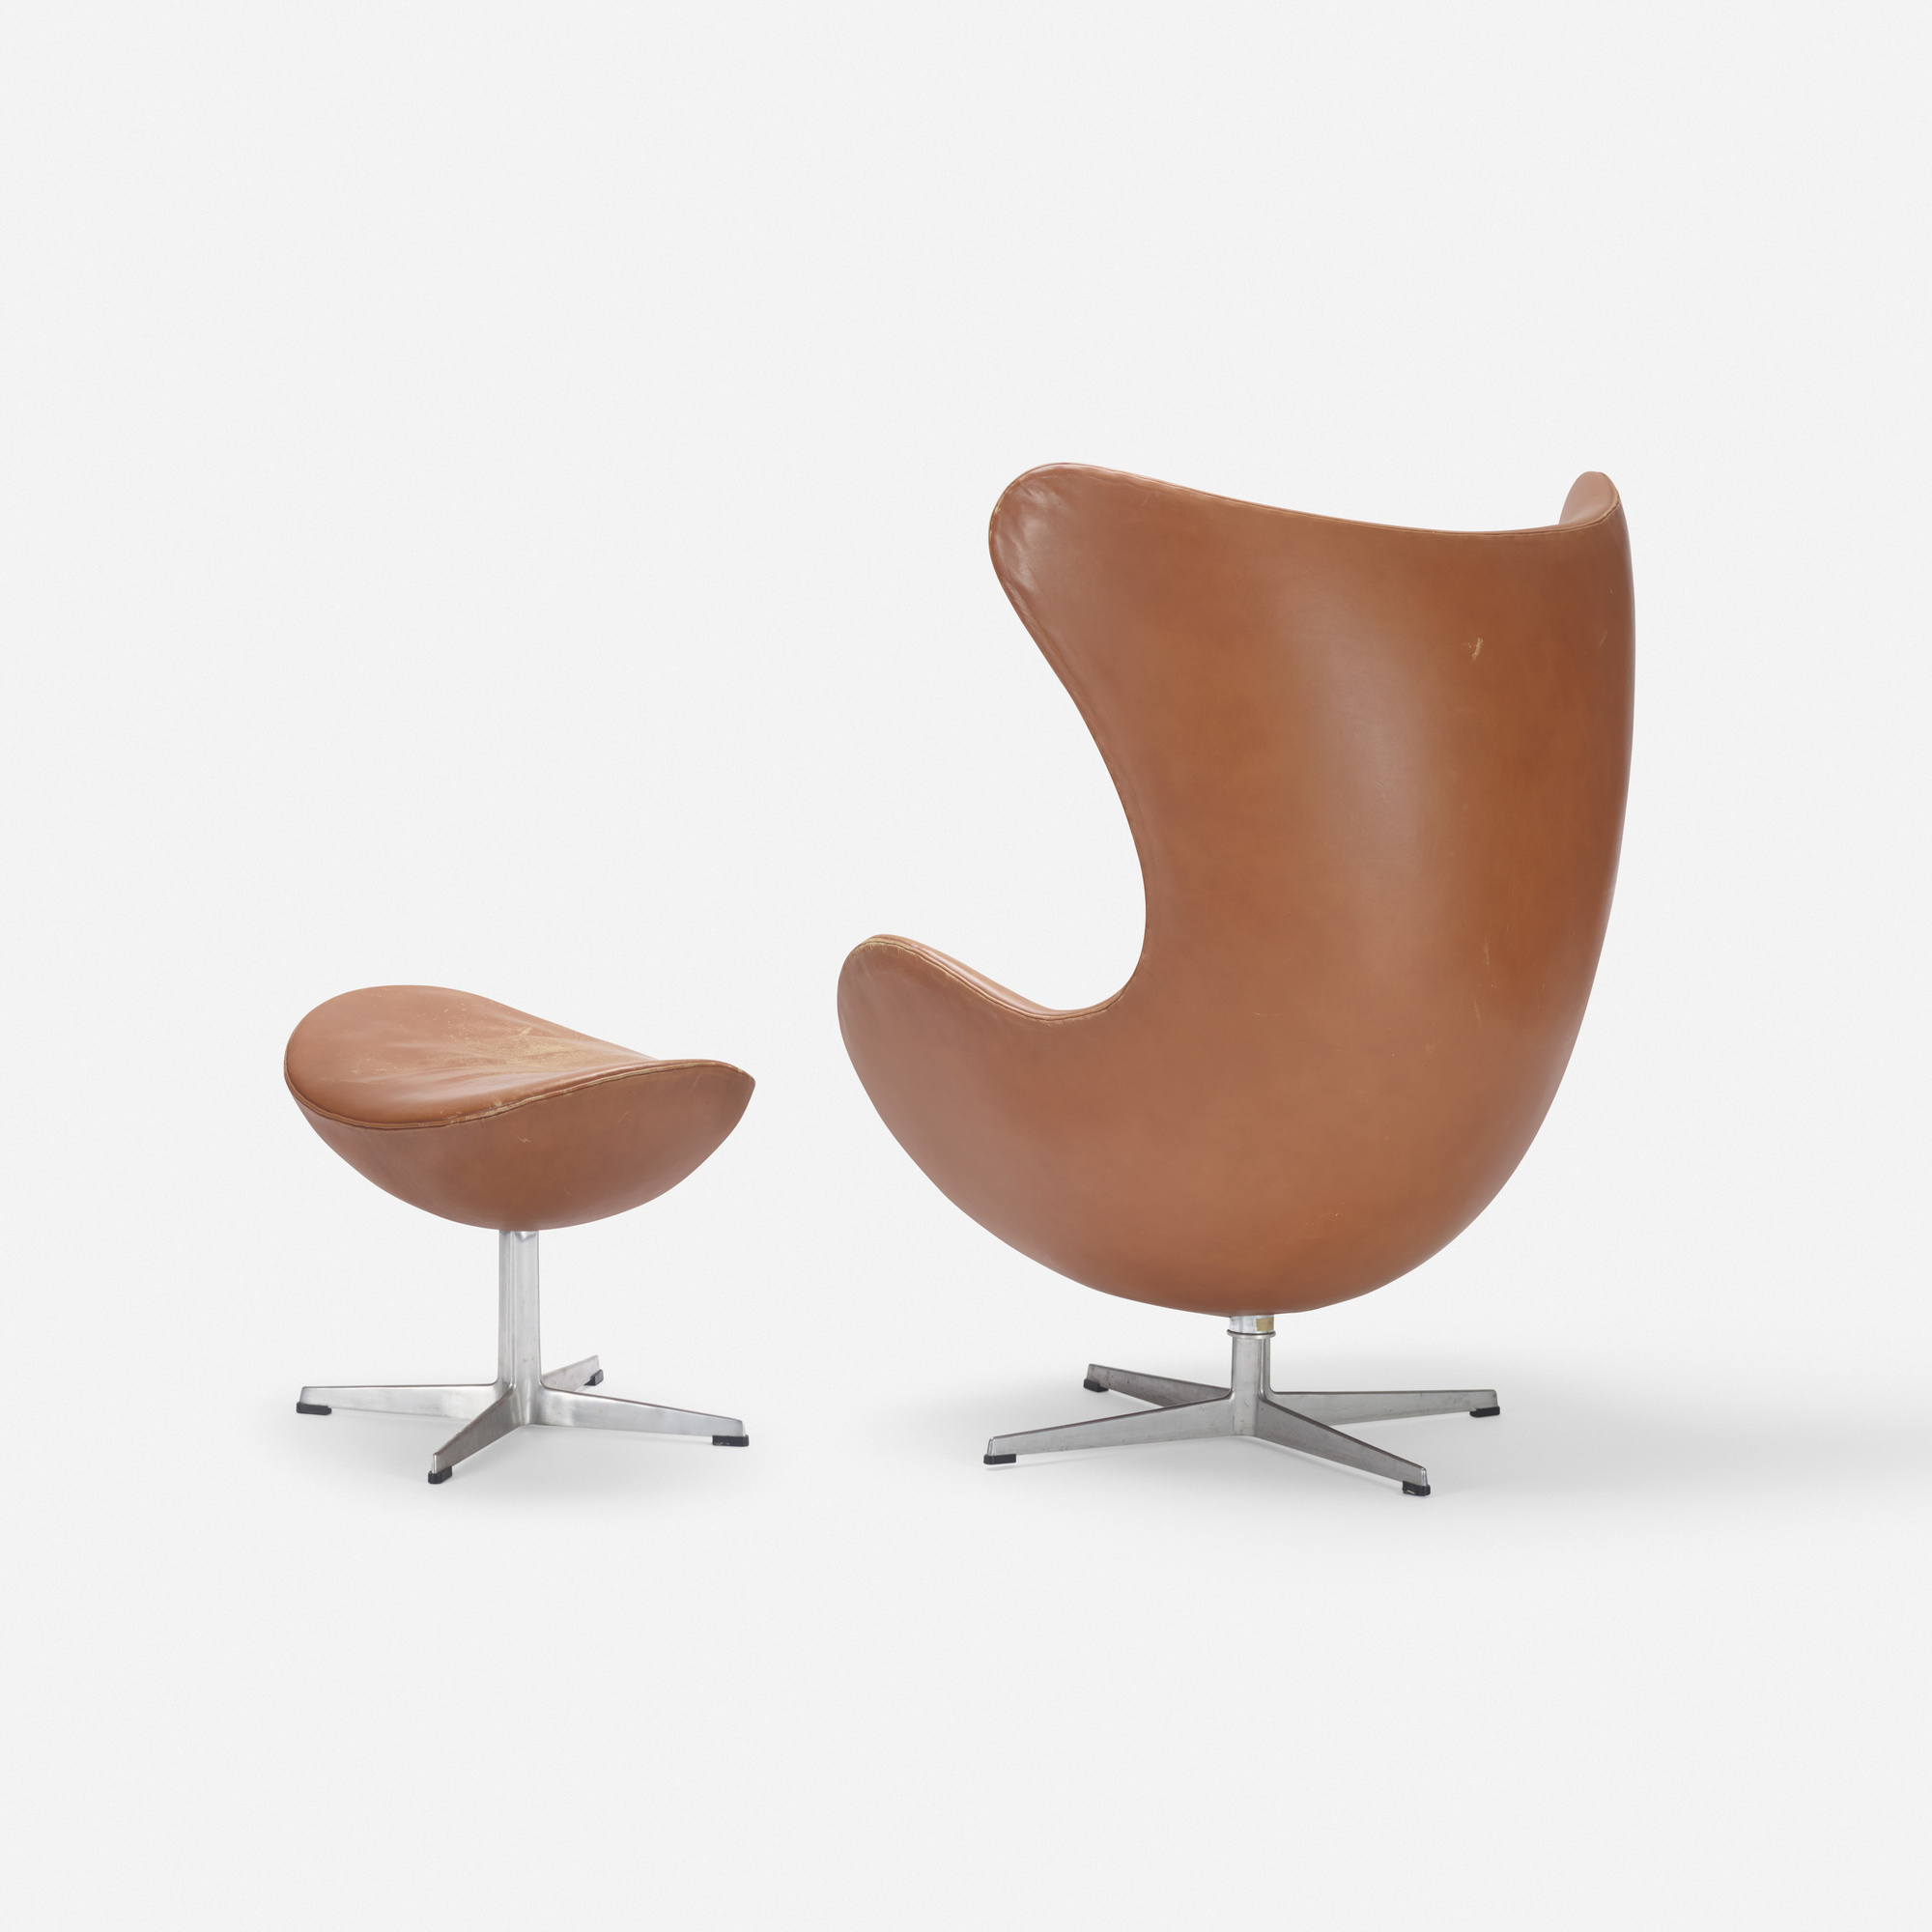 282 Arne Jacobsen Egg Chair And Ottoman Design 22 March 2018 Auctions Wright Auctions Of Art And Design